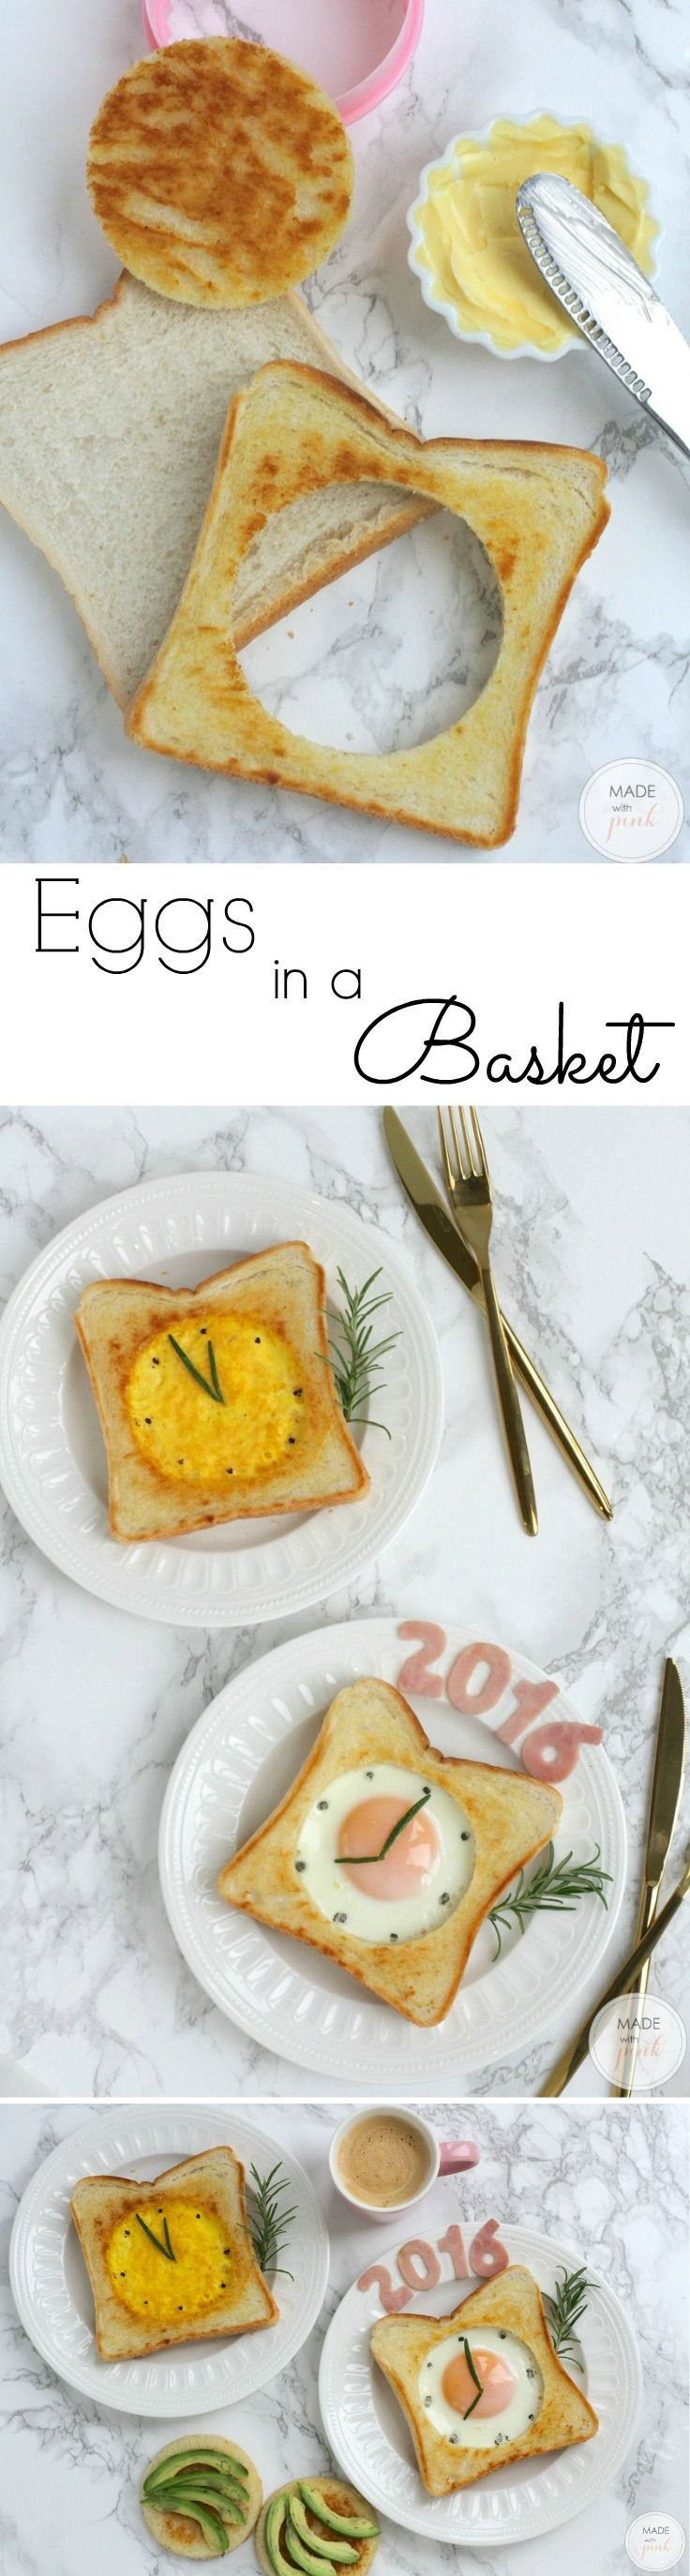 Eggs in a Basket to kick off 2016